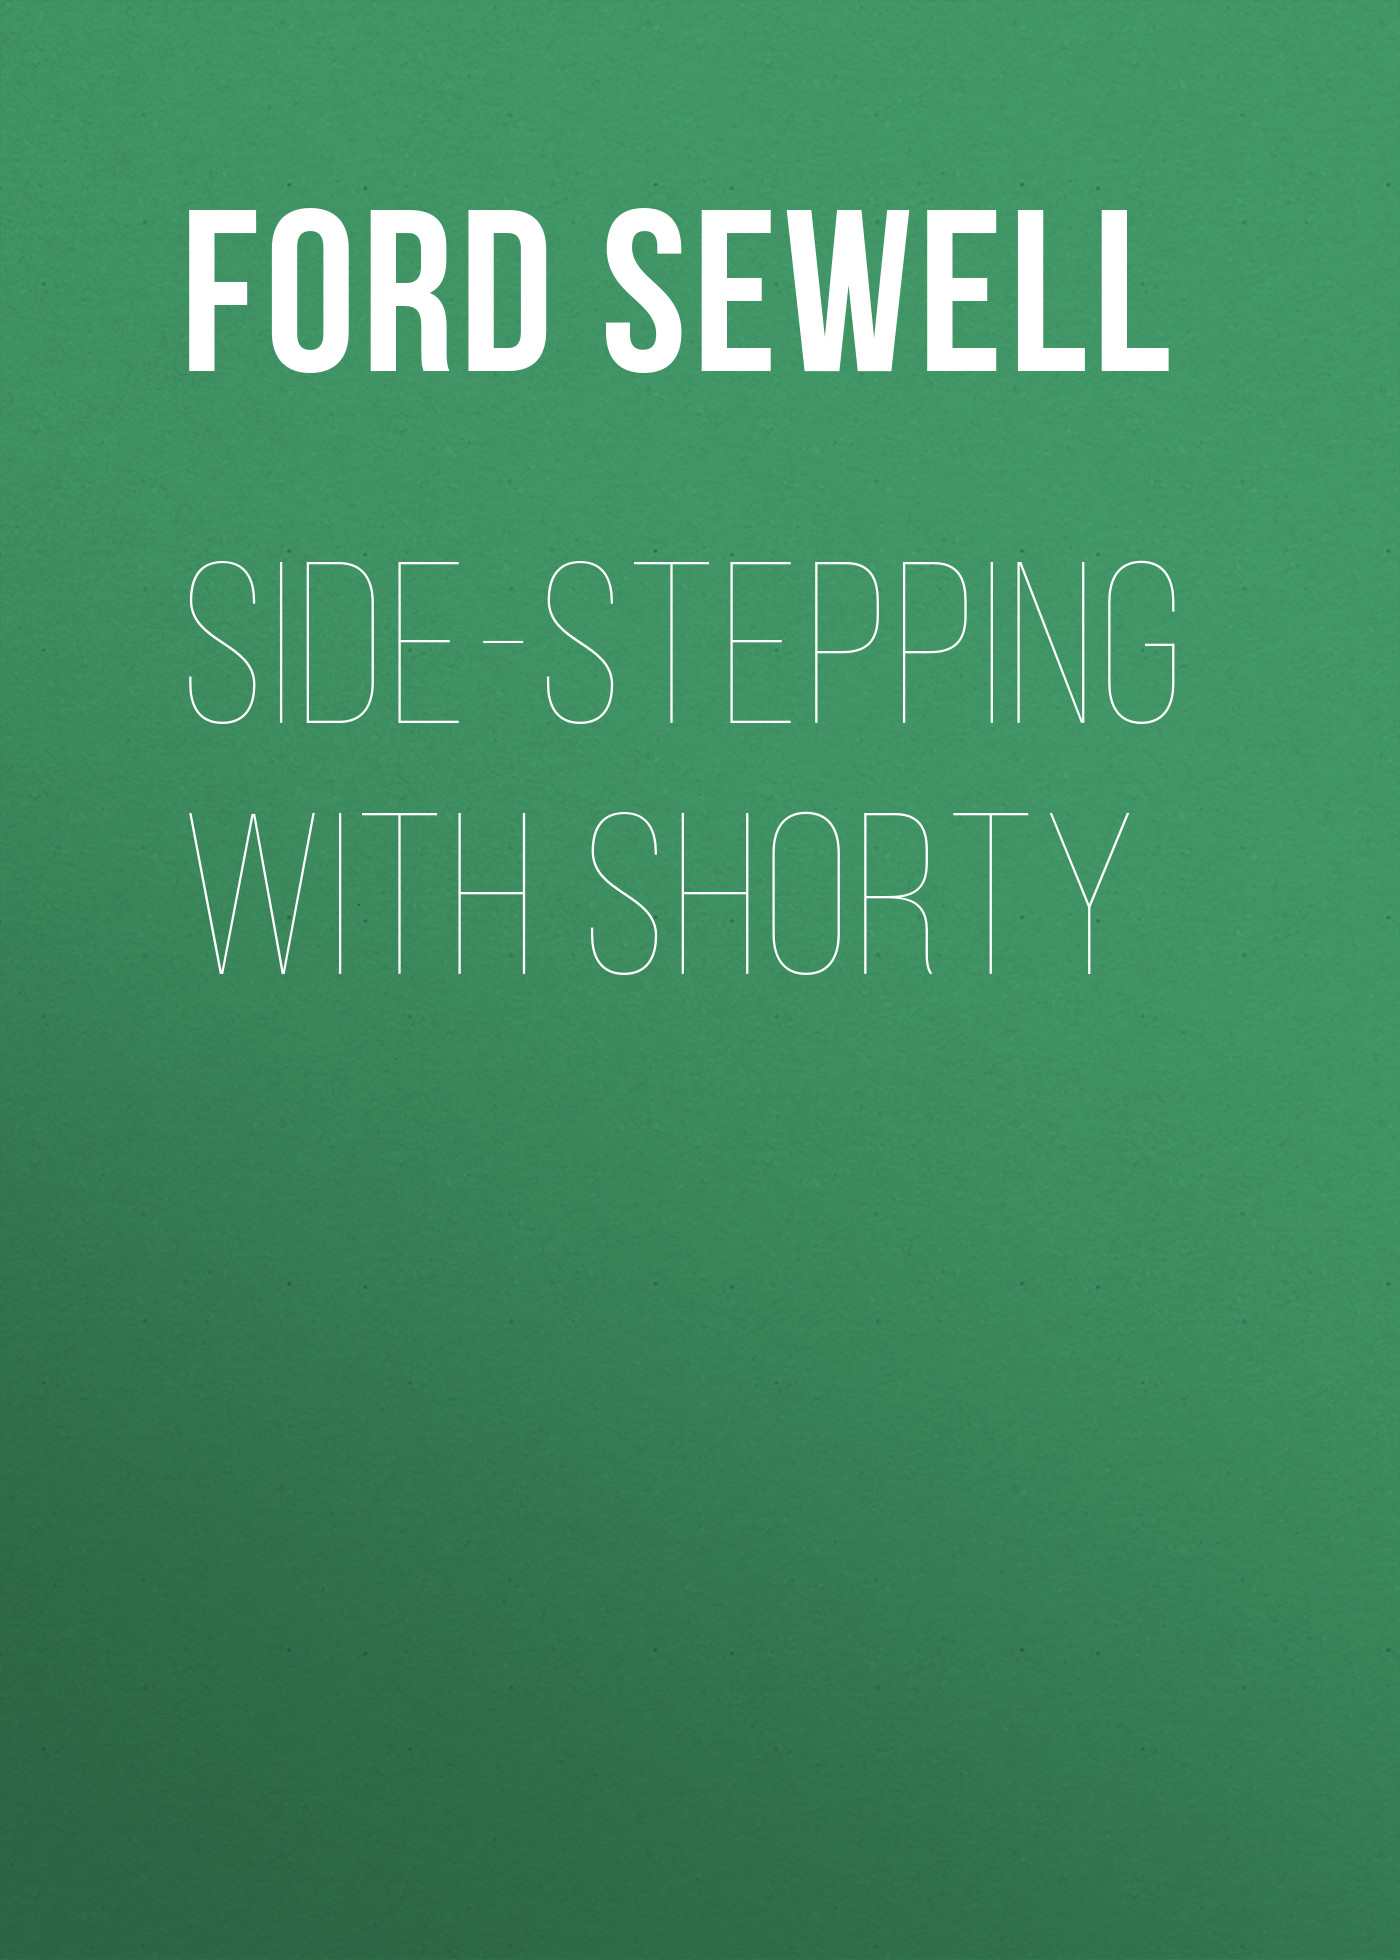 Ford Sewell Side-stepping with Shorty